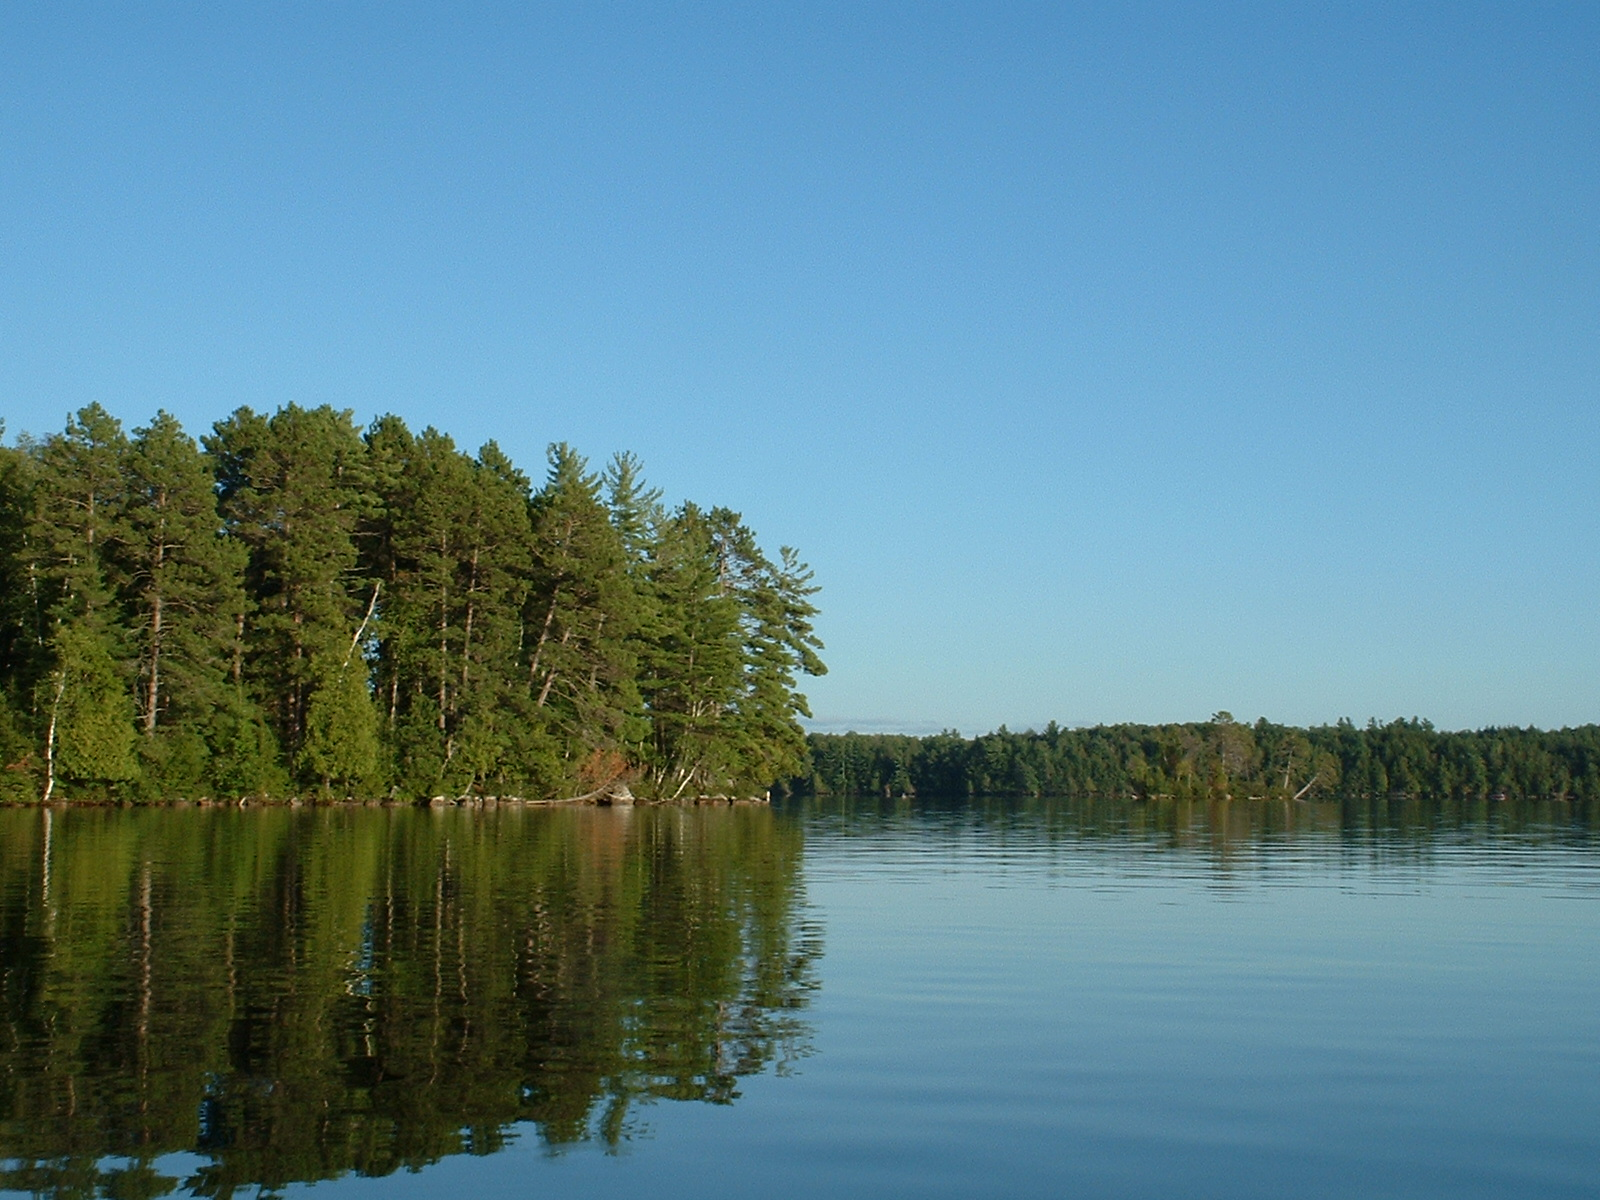 Star lake vilas county fishing reports and discussions for Lake wisconsin fishing